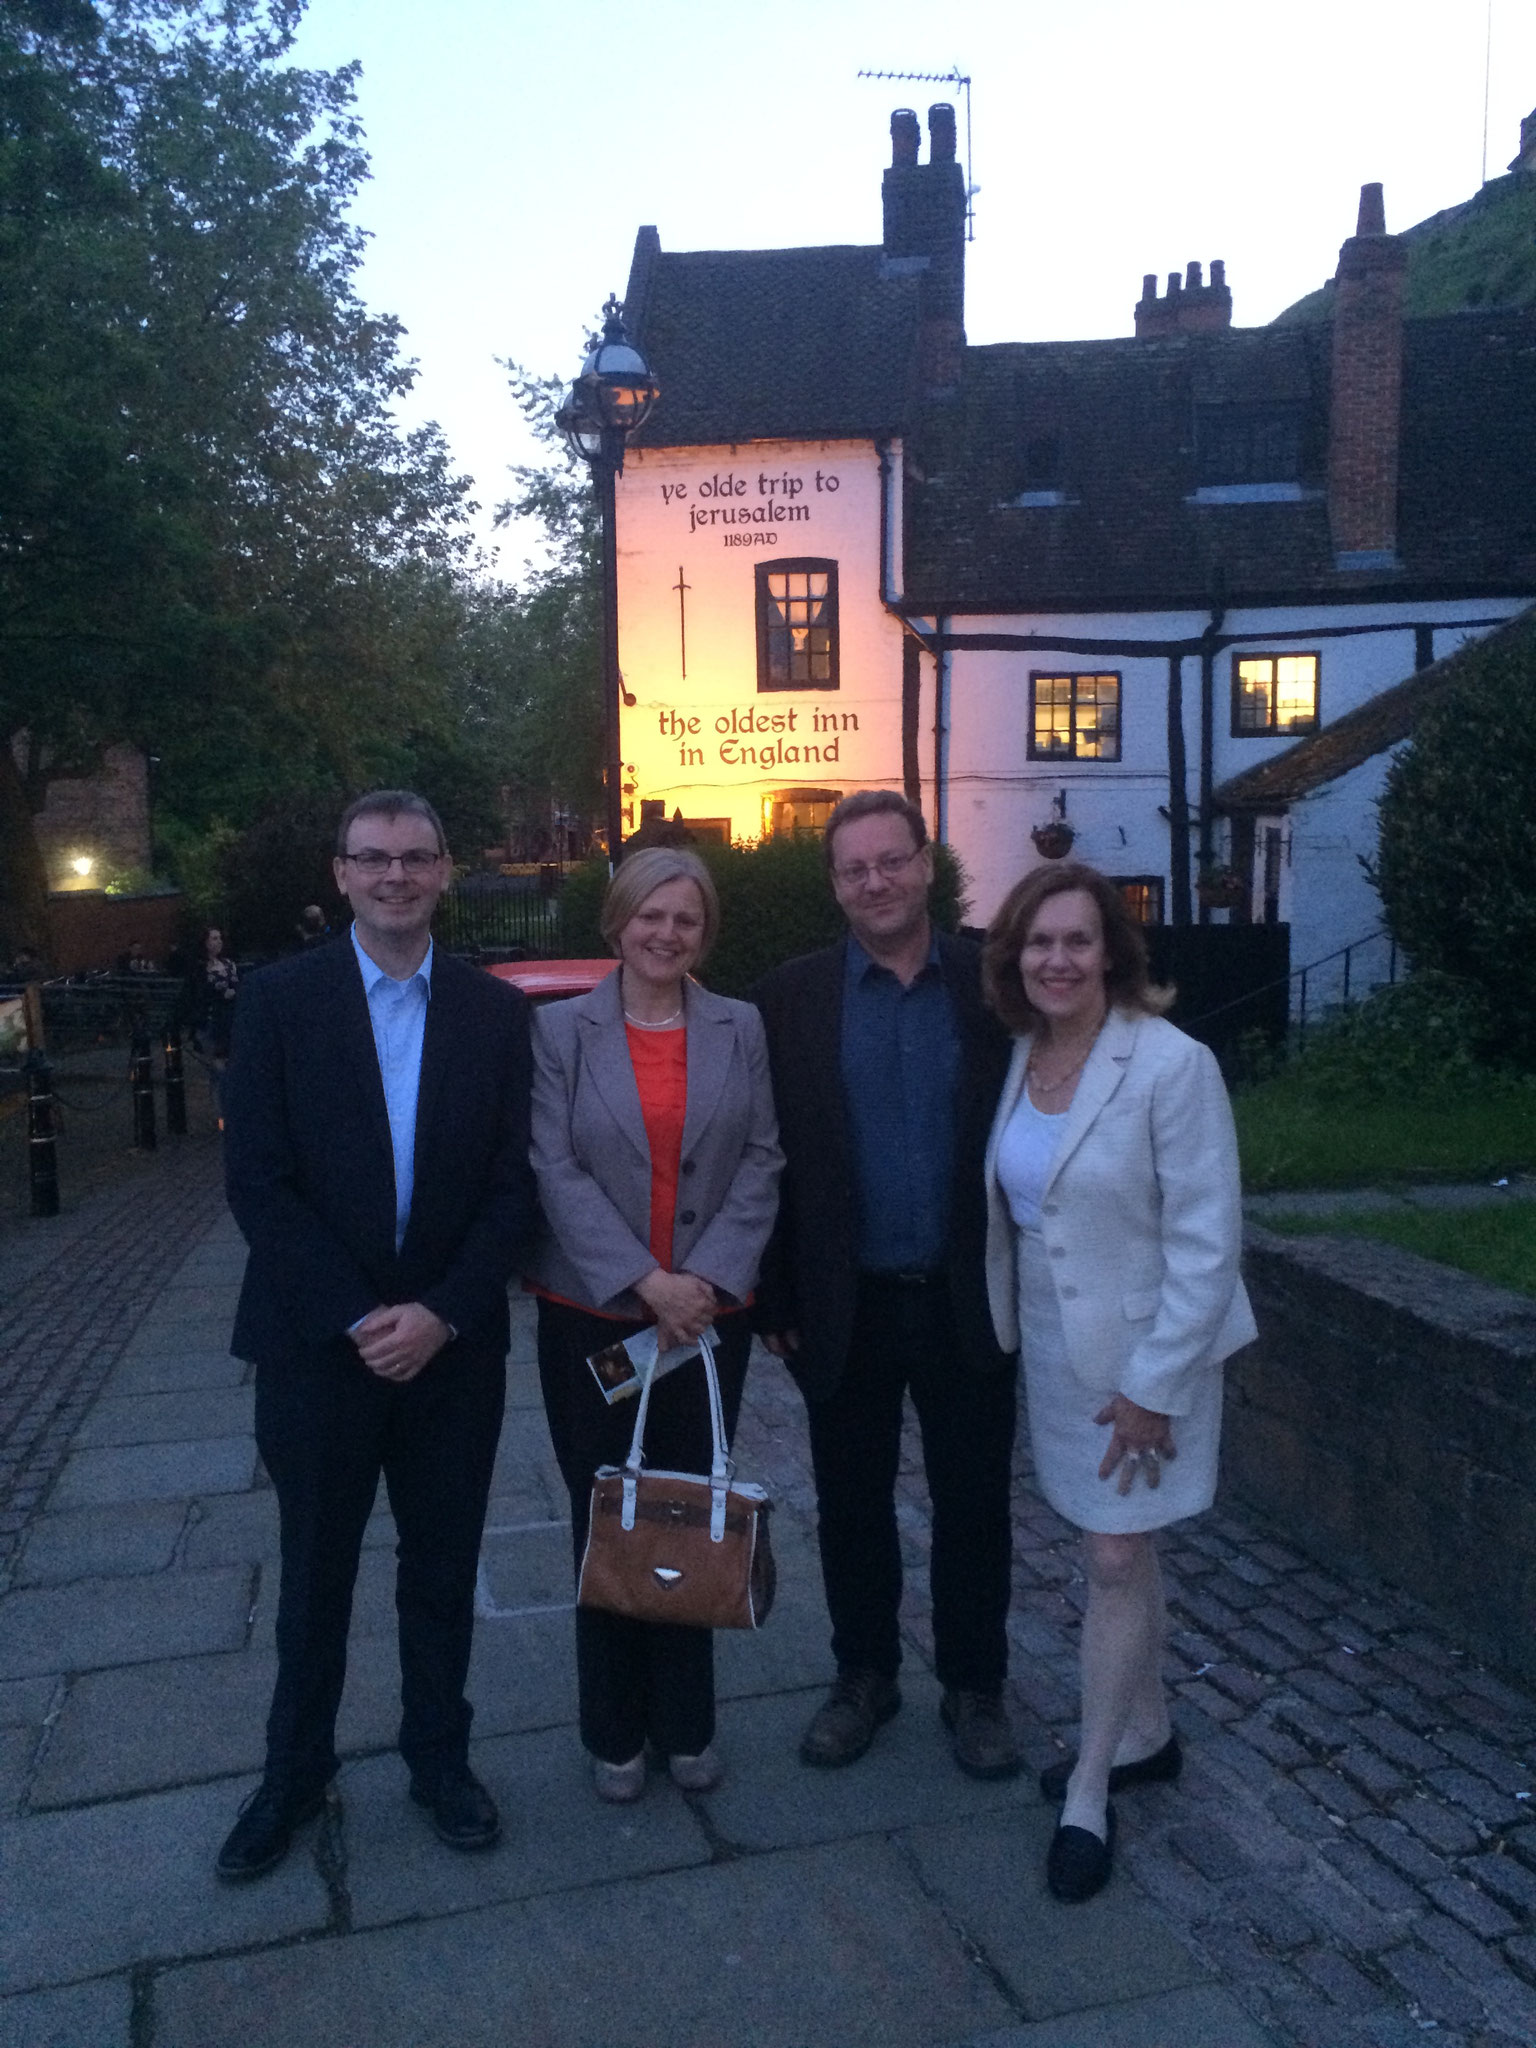 Nigel, Sharon, David Heery, Lorraine in front of the oldest tavern in England, built into caves in Nottingham Castle May, 2016